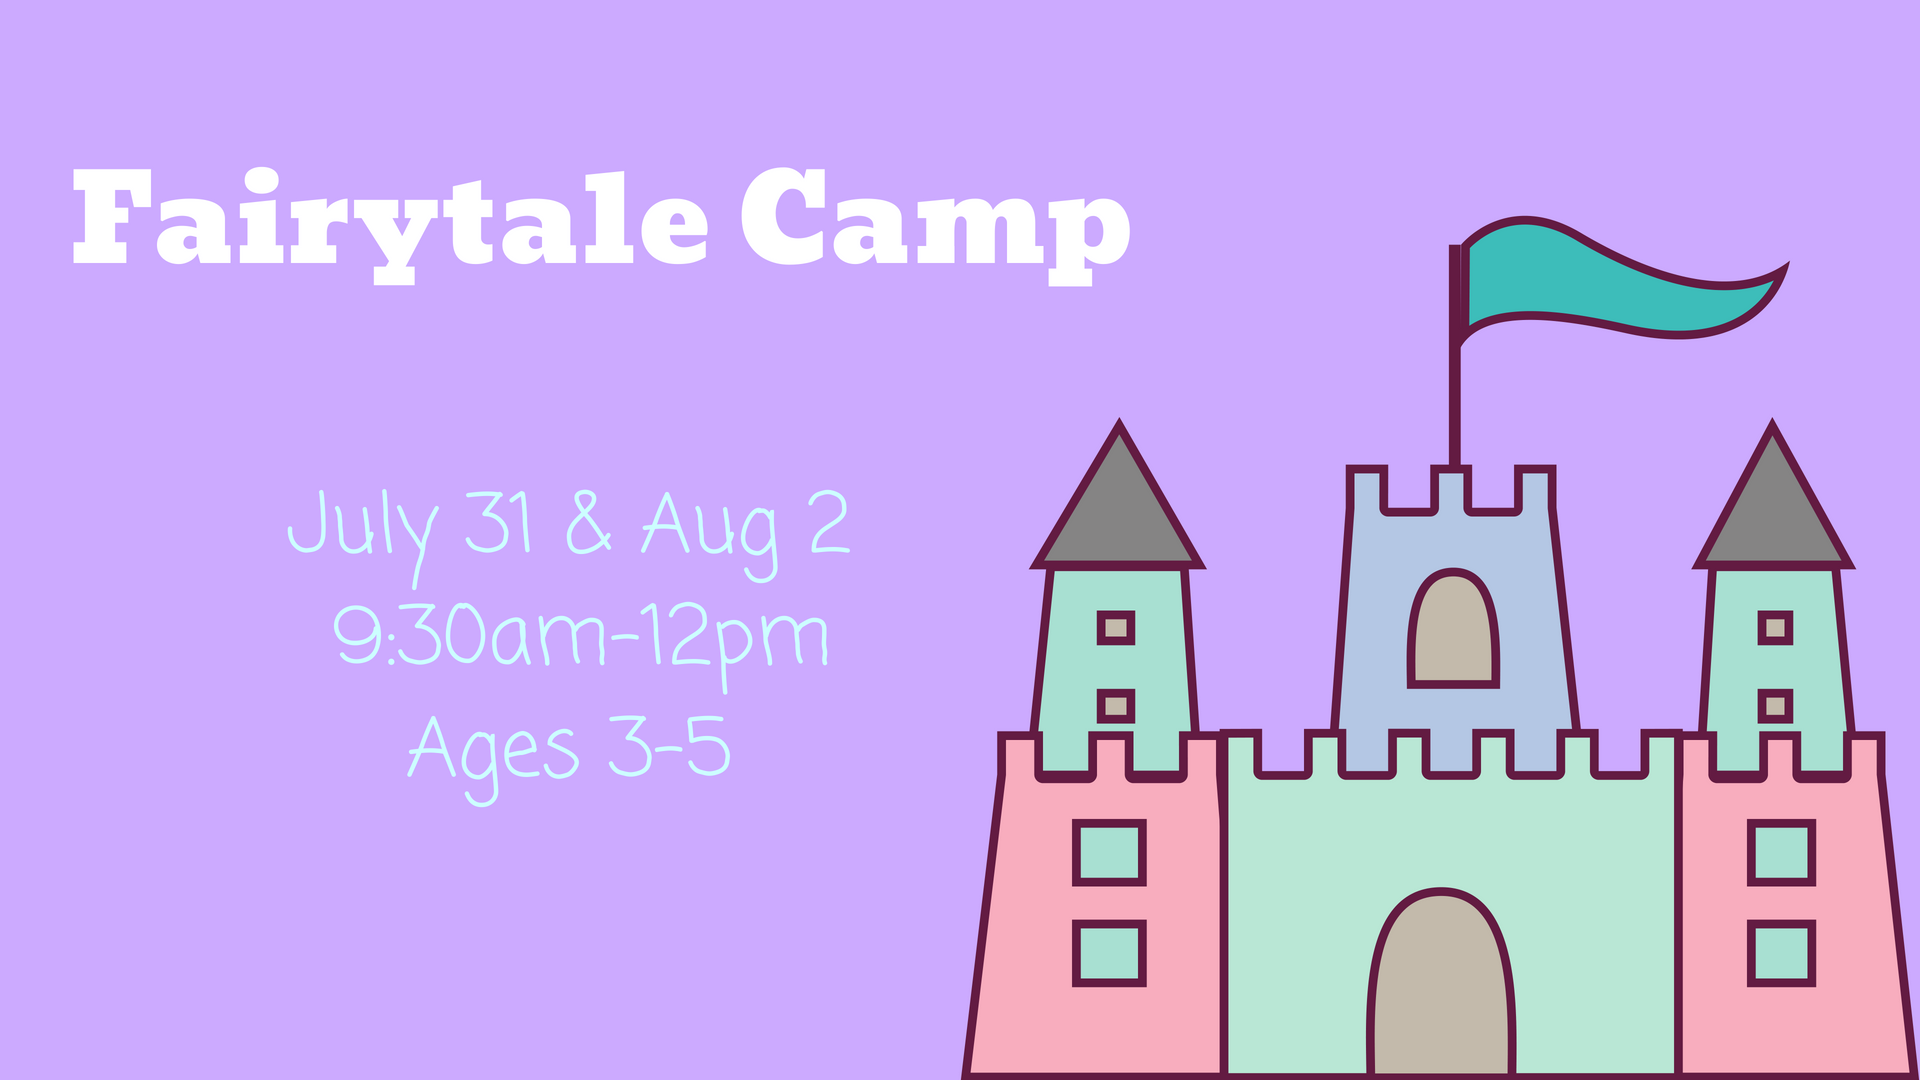 FairyTale Camp